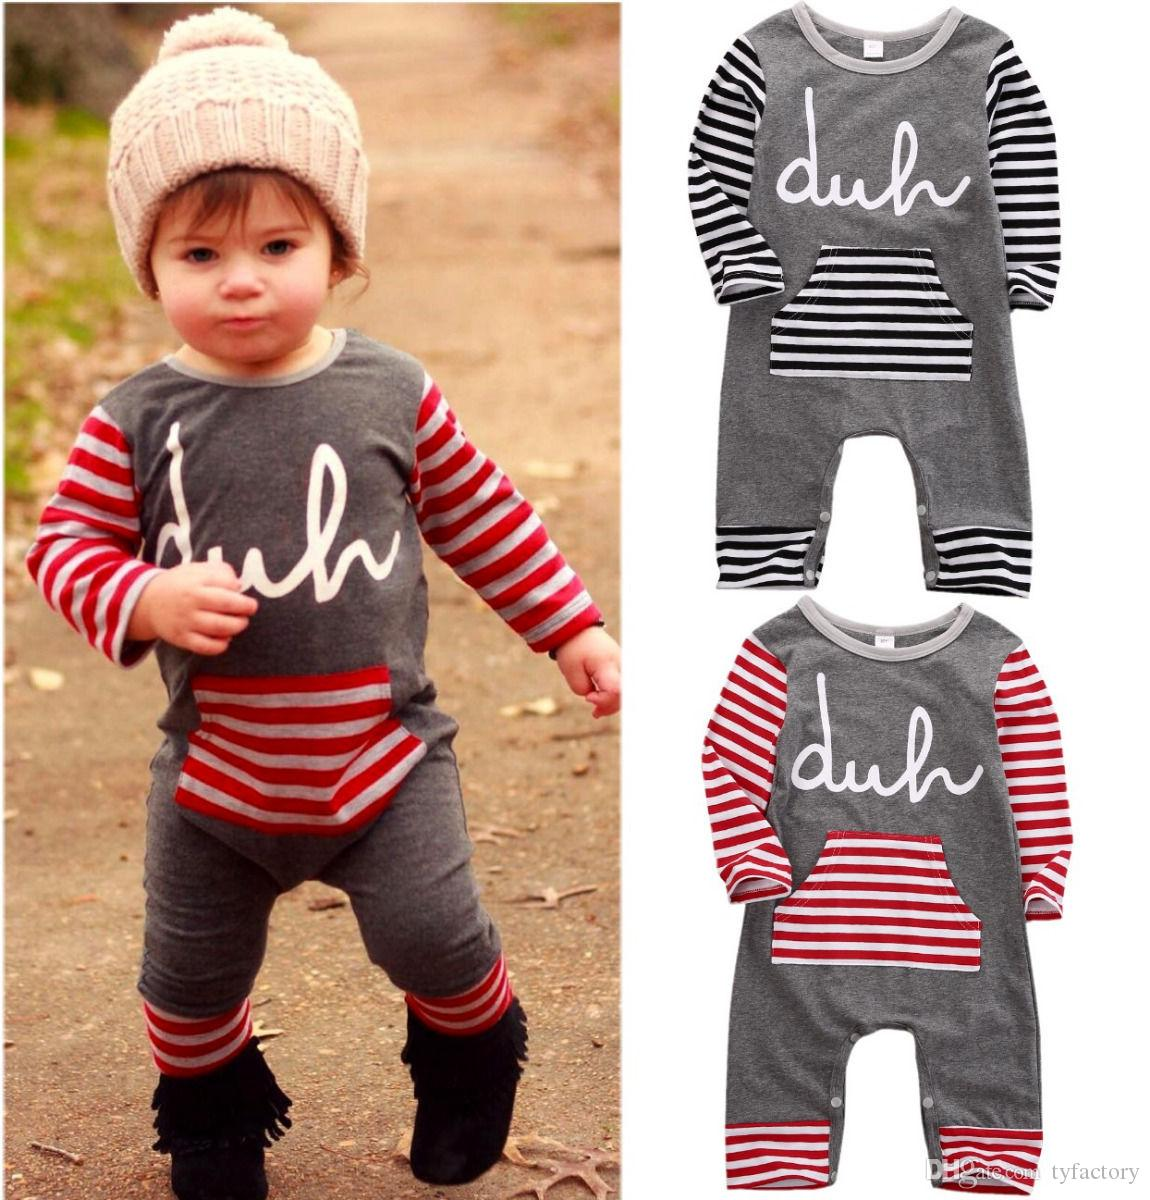 hot sale casual baby suit Kids children Boy Girl Striped Cotton long sleeve Romper spring autumn fashion Jumspuit Playsuit Outfit Clothes